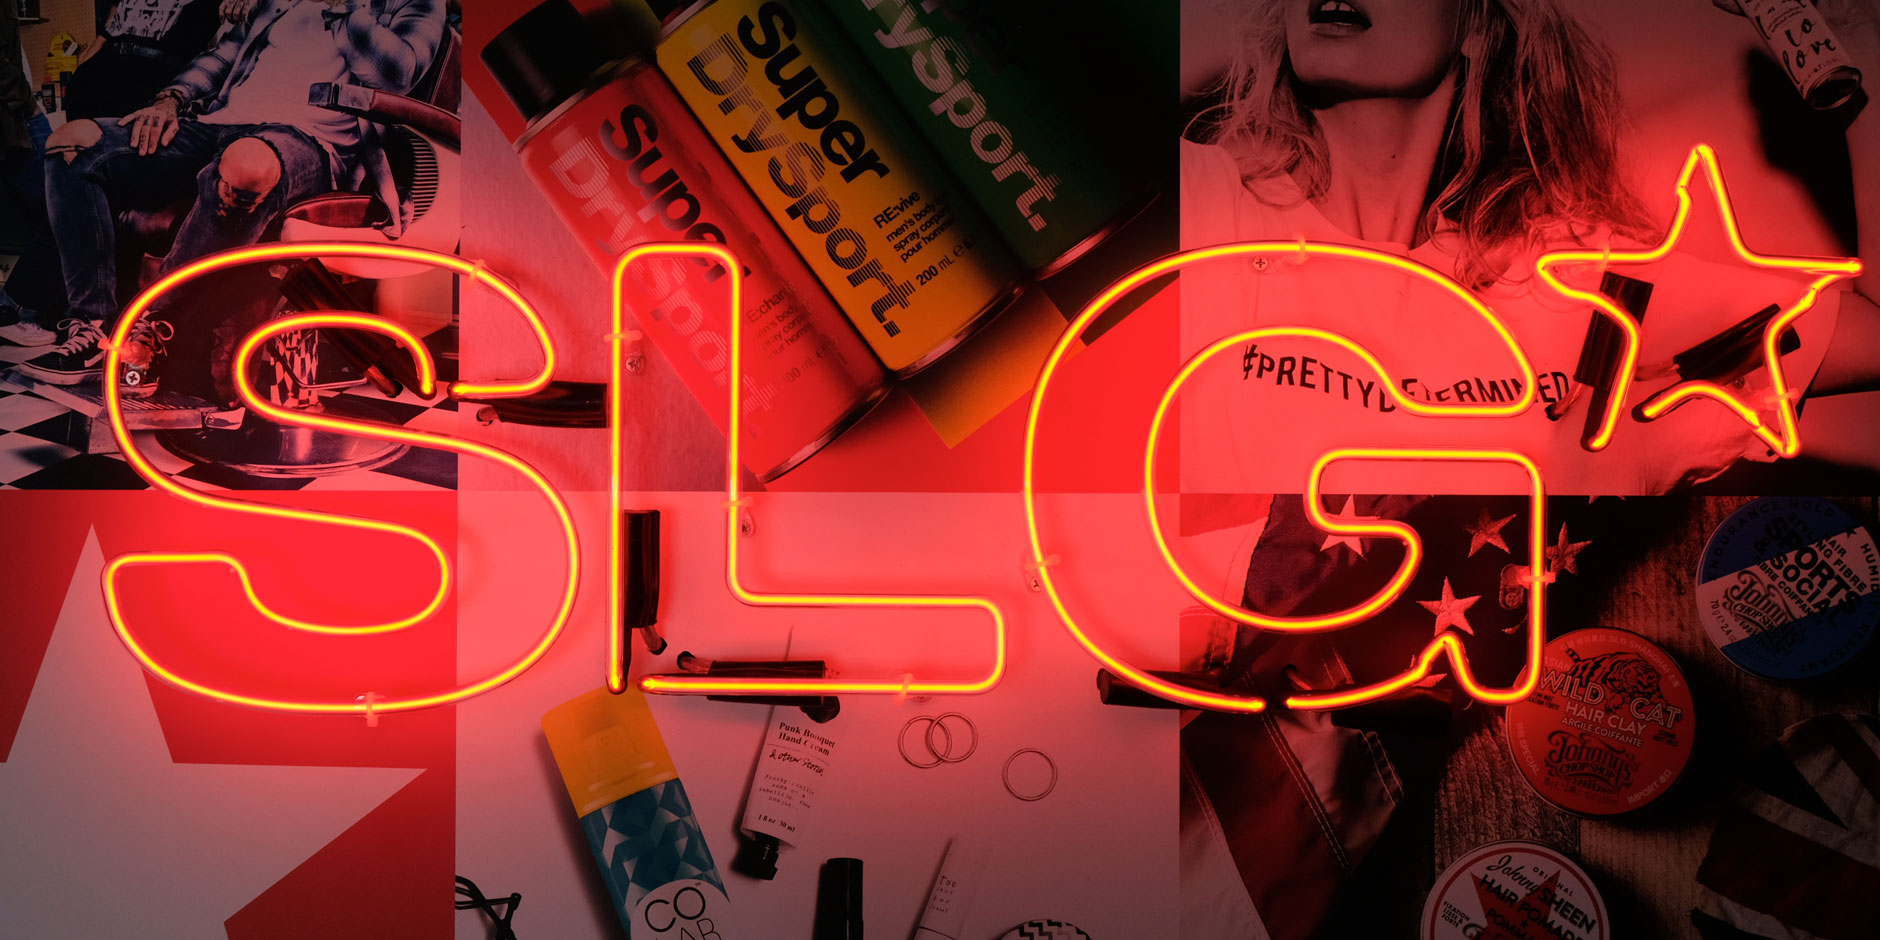 SLG Neon Sign